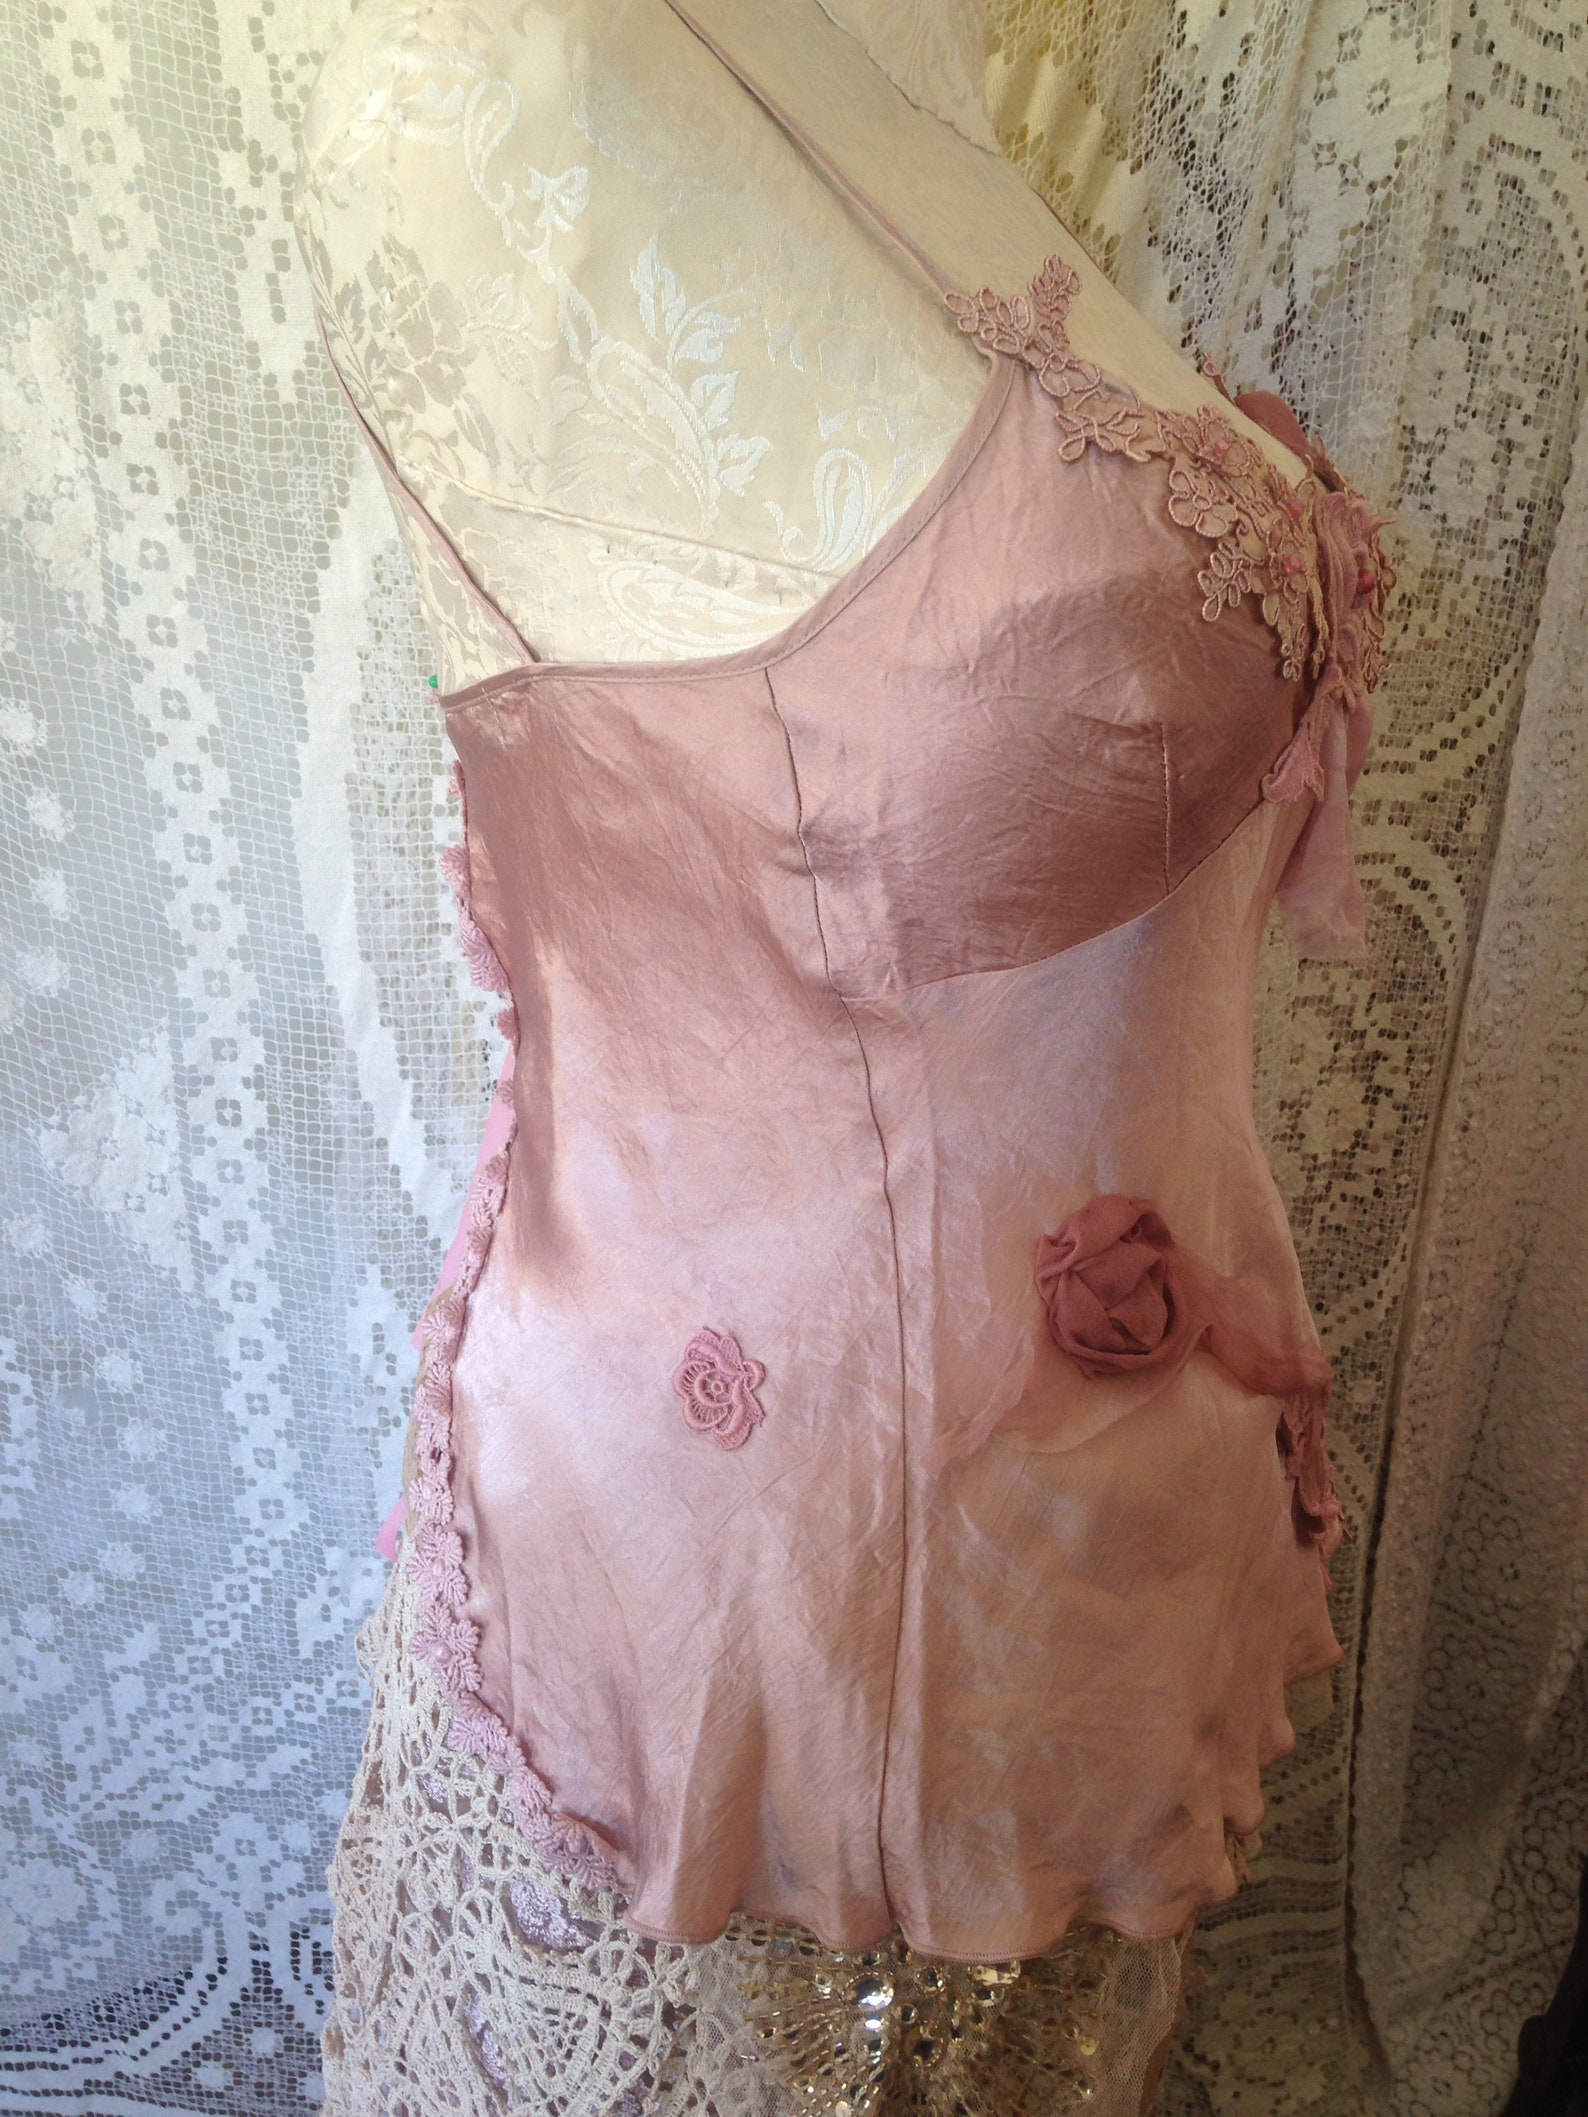 ballet pink tie-back shoestring top.fairy lagenlook shabby romantic delicate with silk flower details and lots of guipure lace t